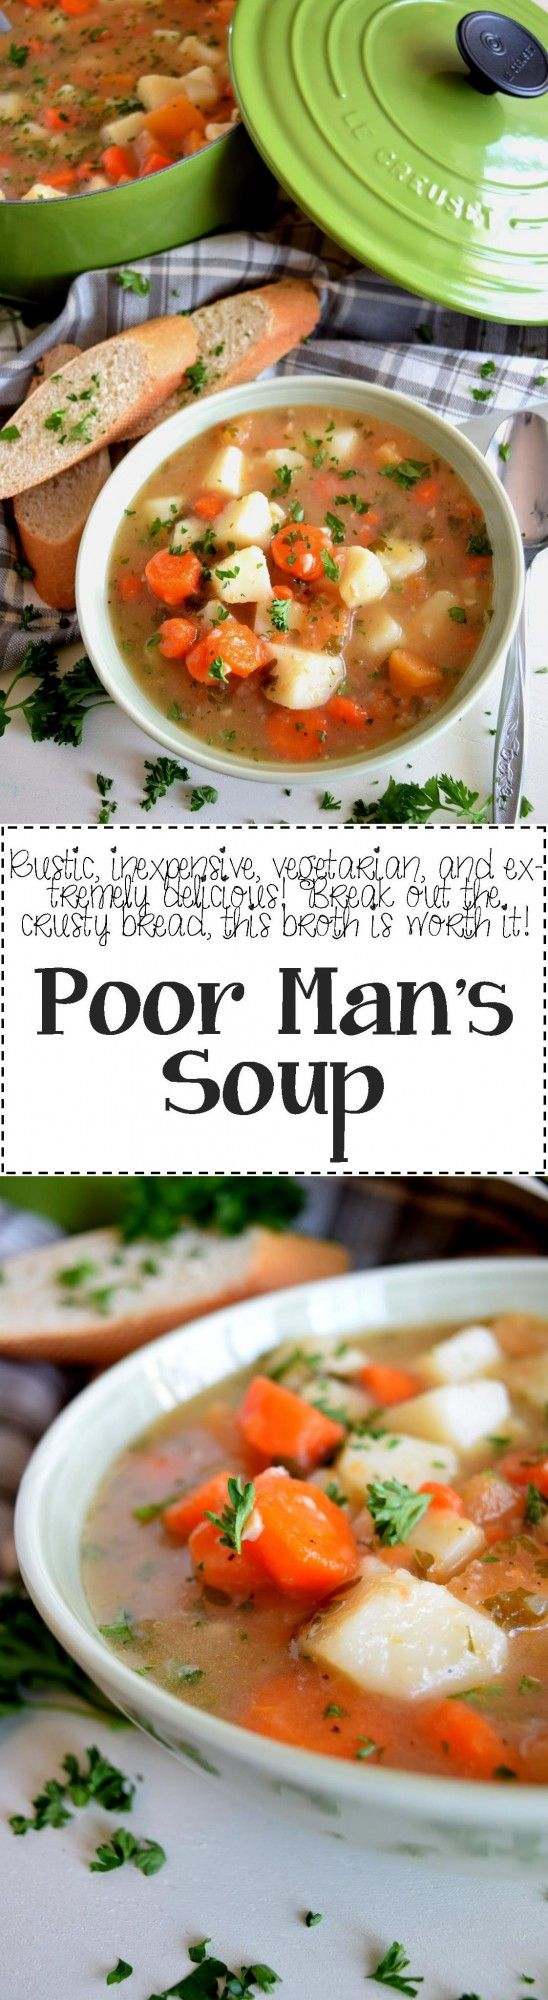 Poor Man's Soup is a budget-friendly recipe that tastes like a million bucks! Root vegetables are simmered in a vegetable broth with simple seasonings; a humble soup best served with bread for a wholesome, easy dinner. A few years back,…